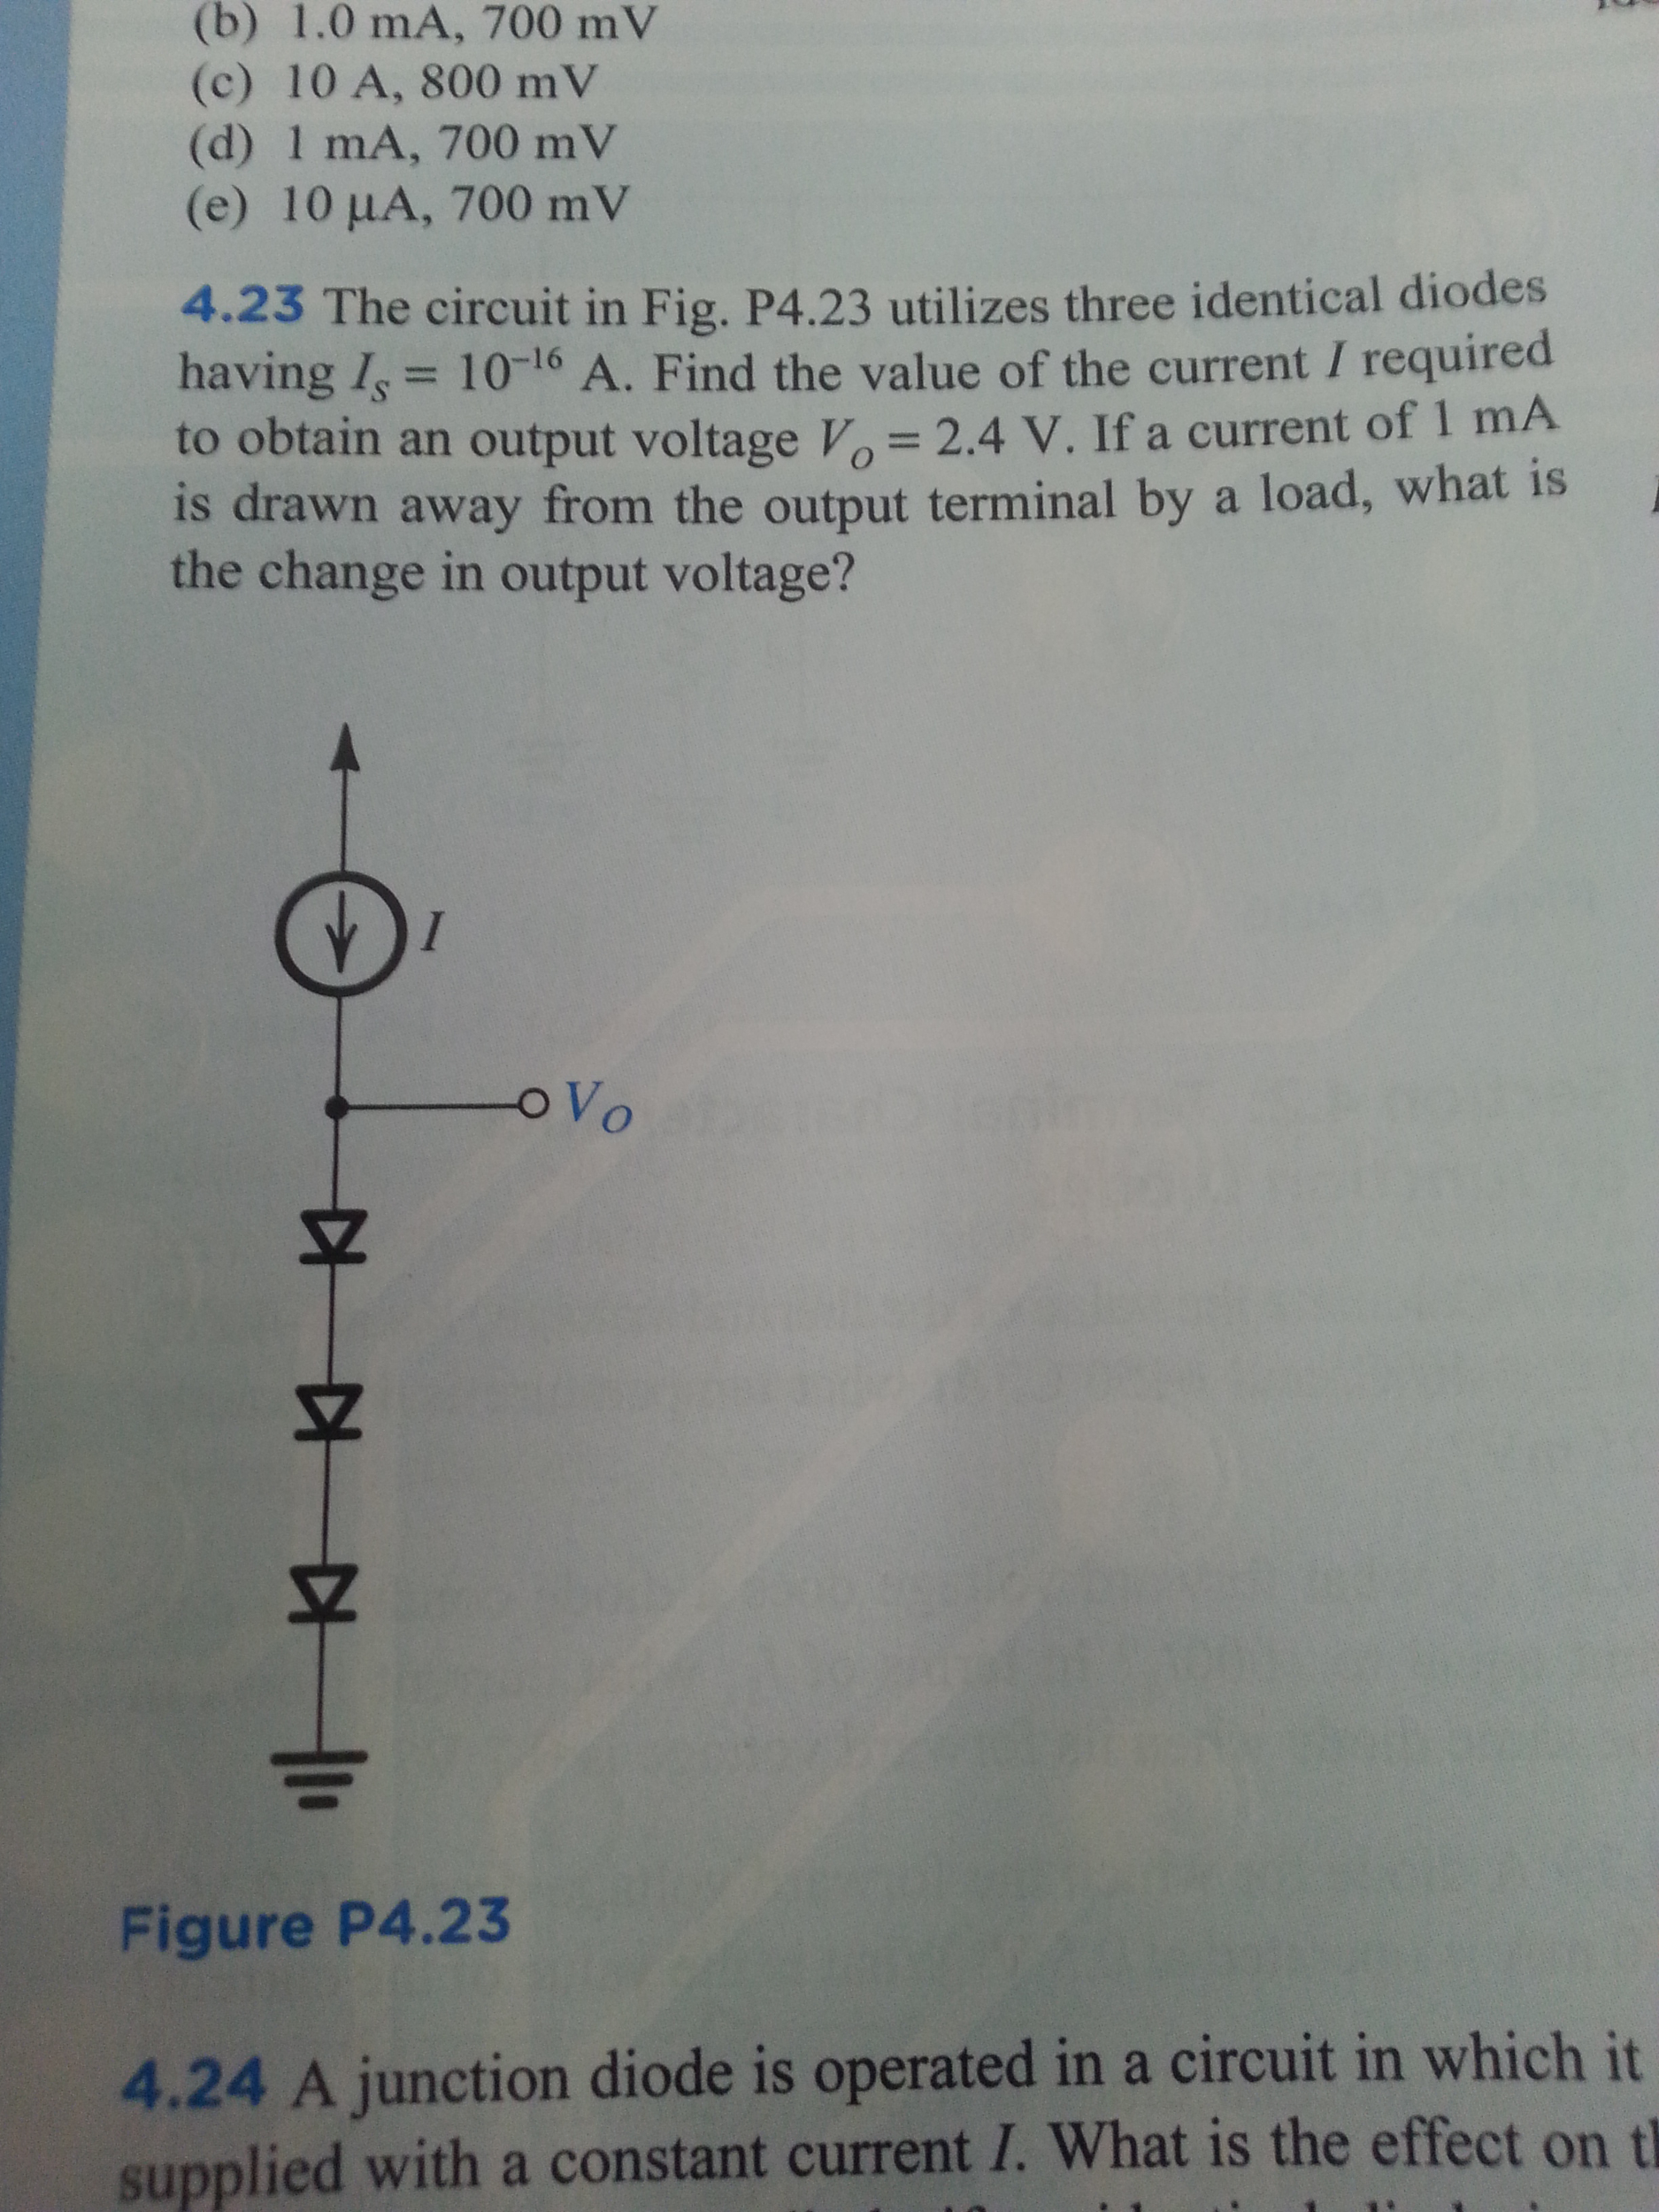 The circuit in Fig. P4.23 utilizes three identical